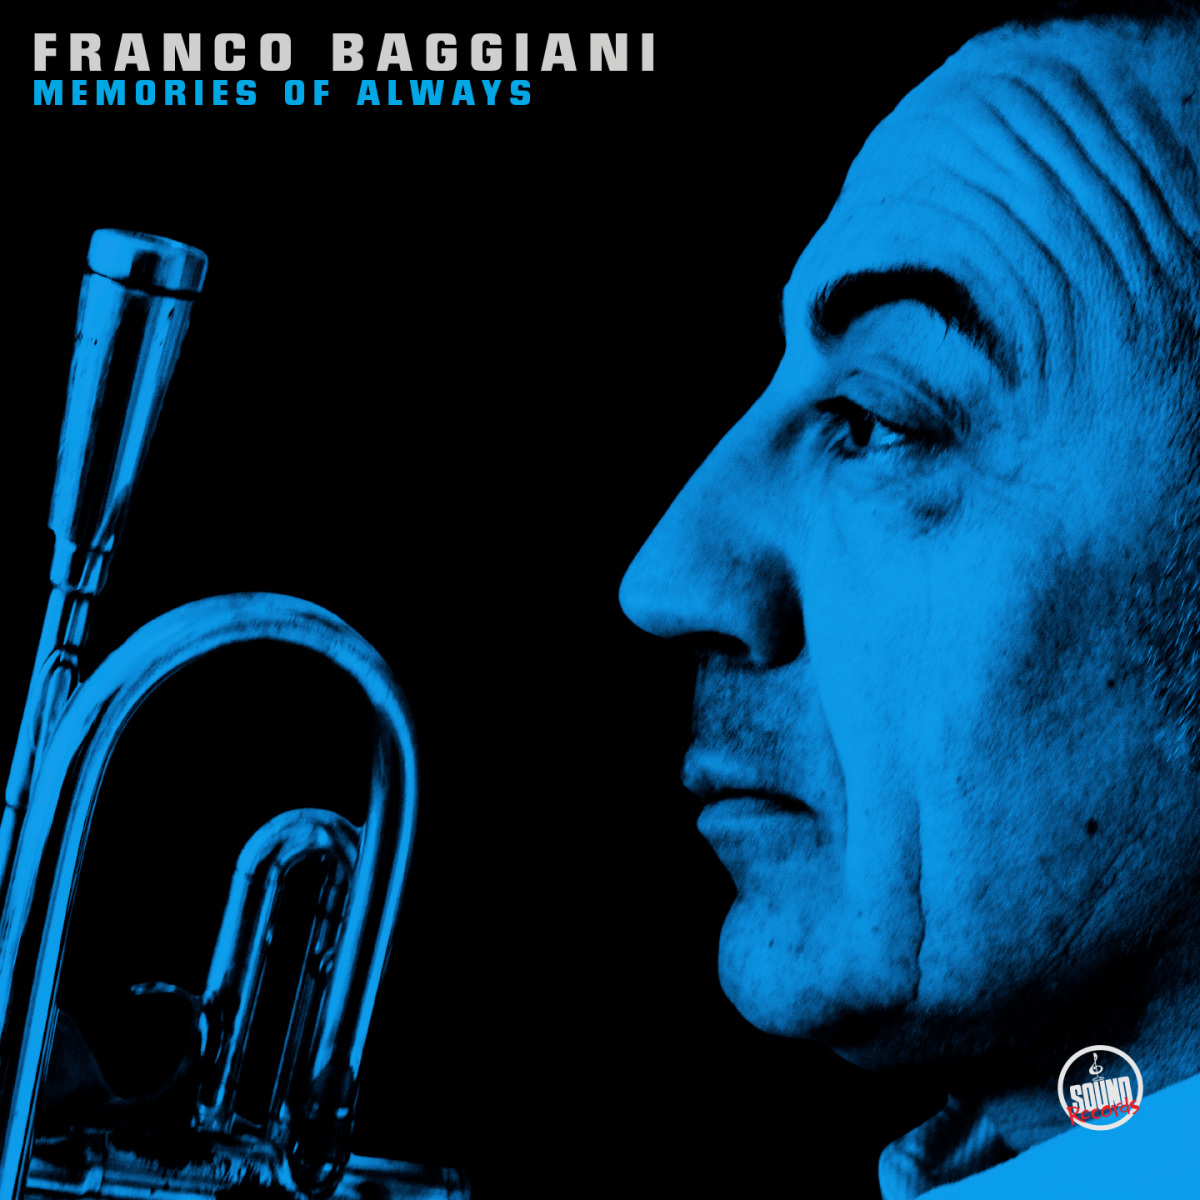 franco_baggiani_memories_of_always